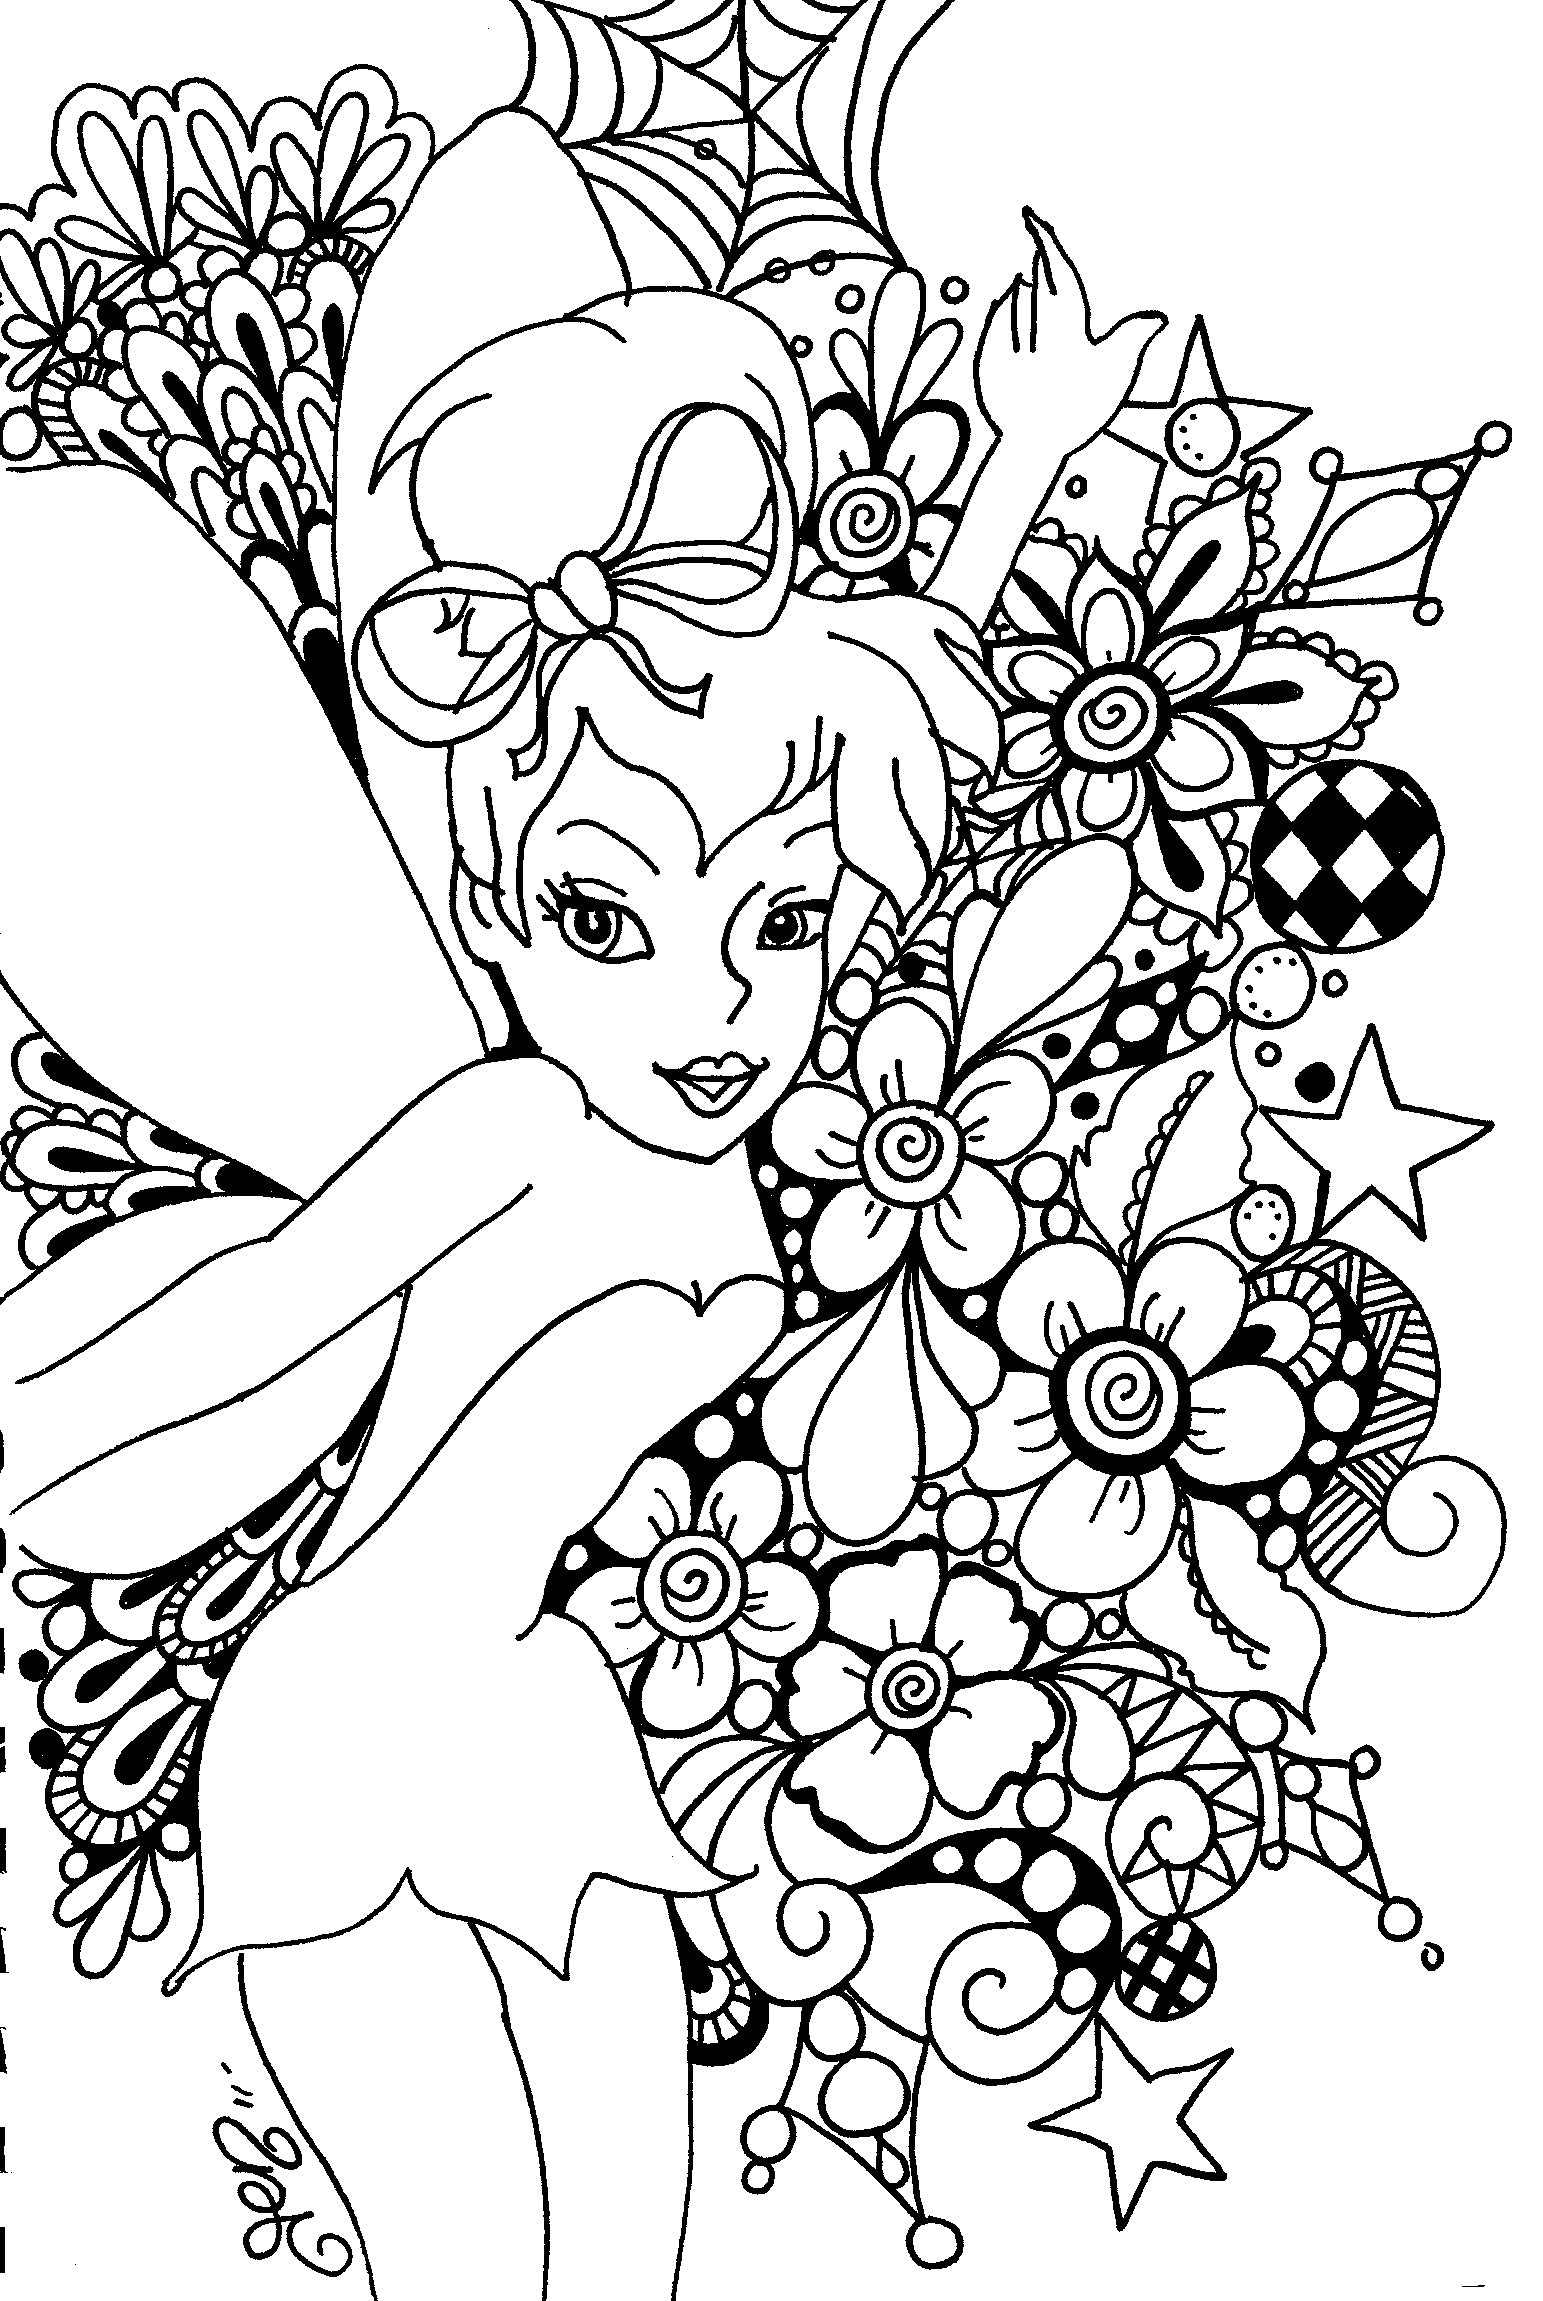 Coloring Pages Tinkerbell  Free Printable Tinkerbell Coloring Pages For Kids